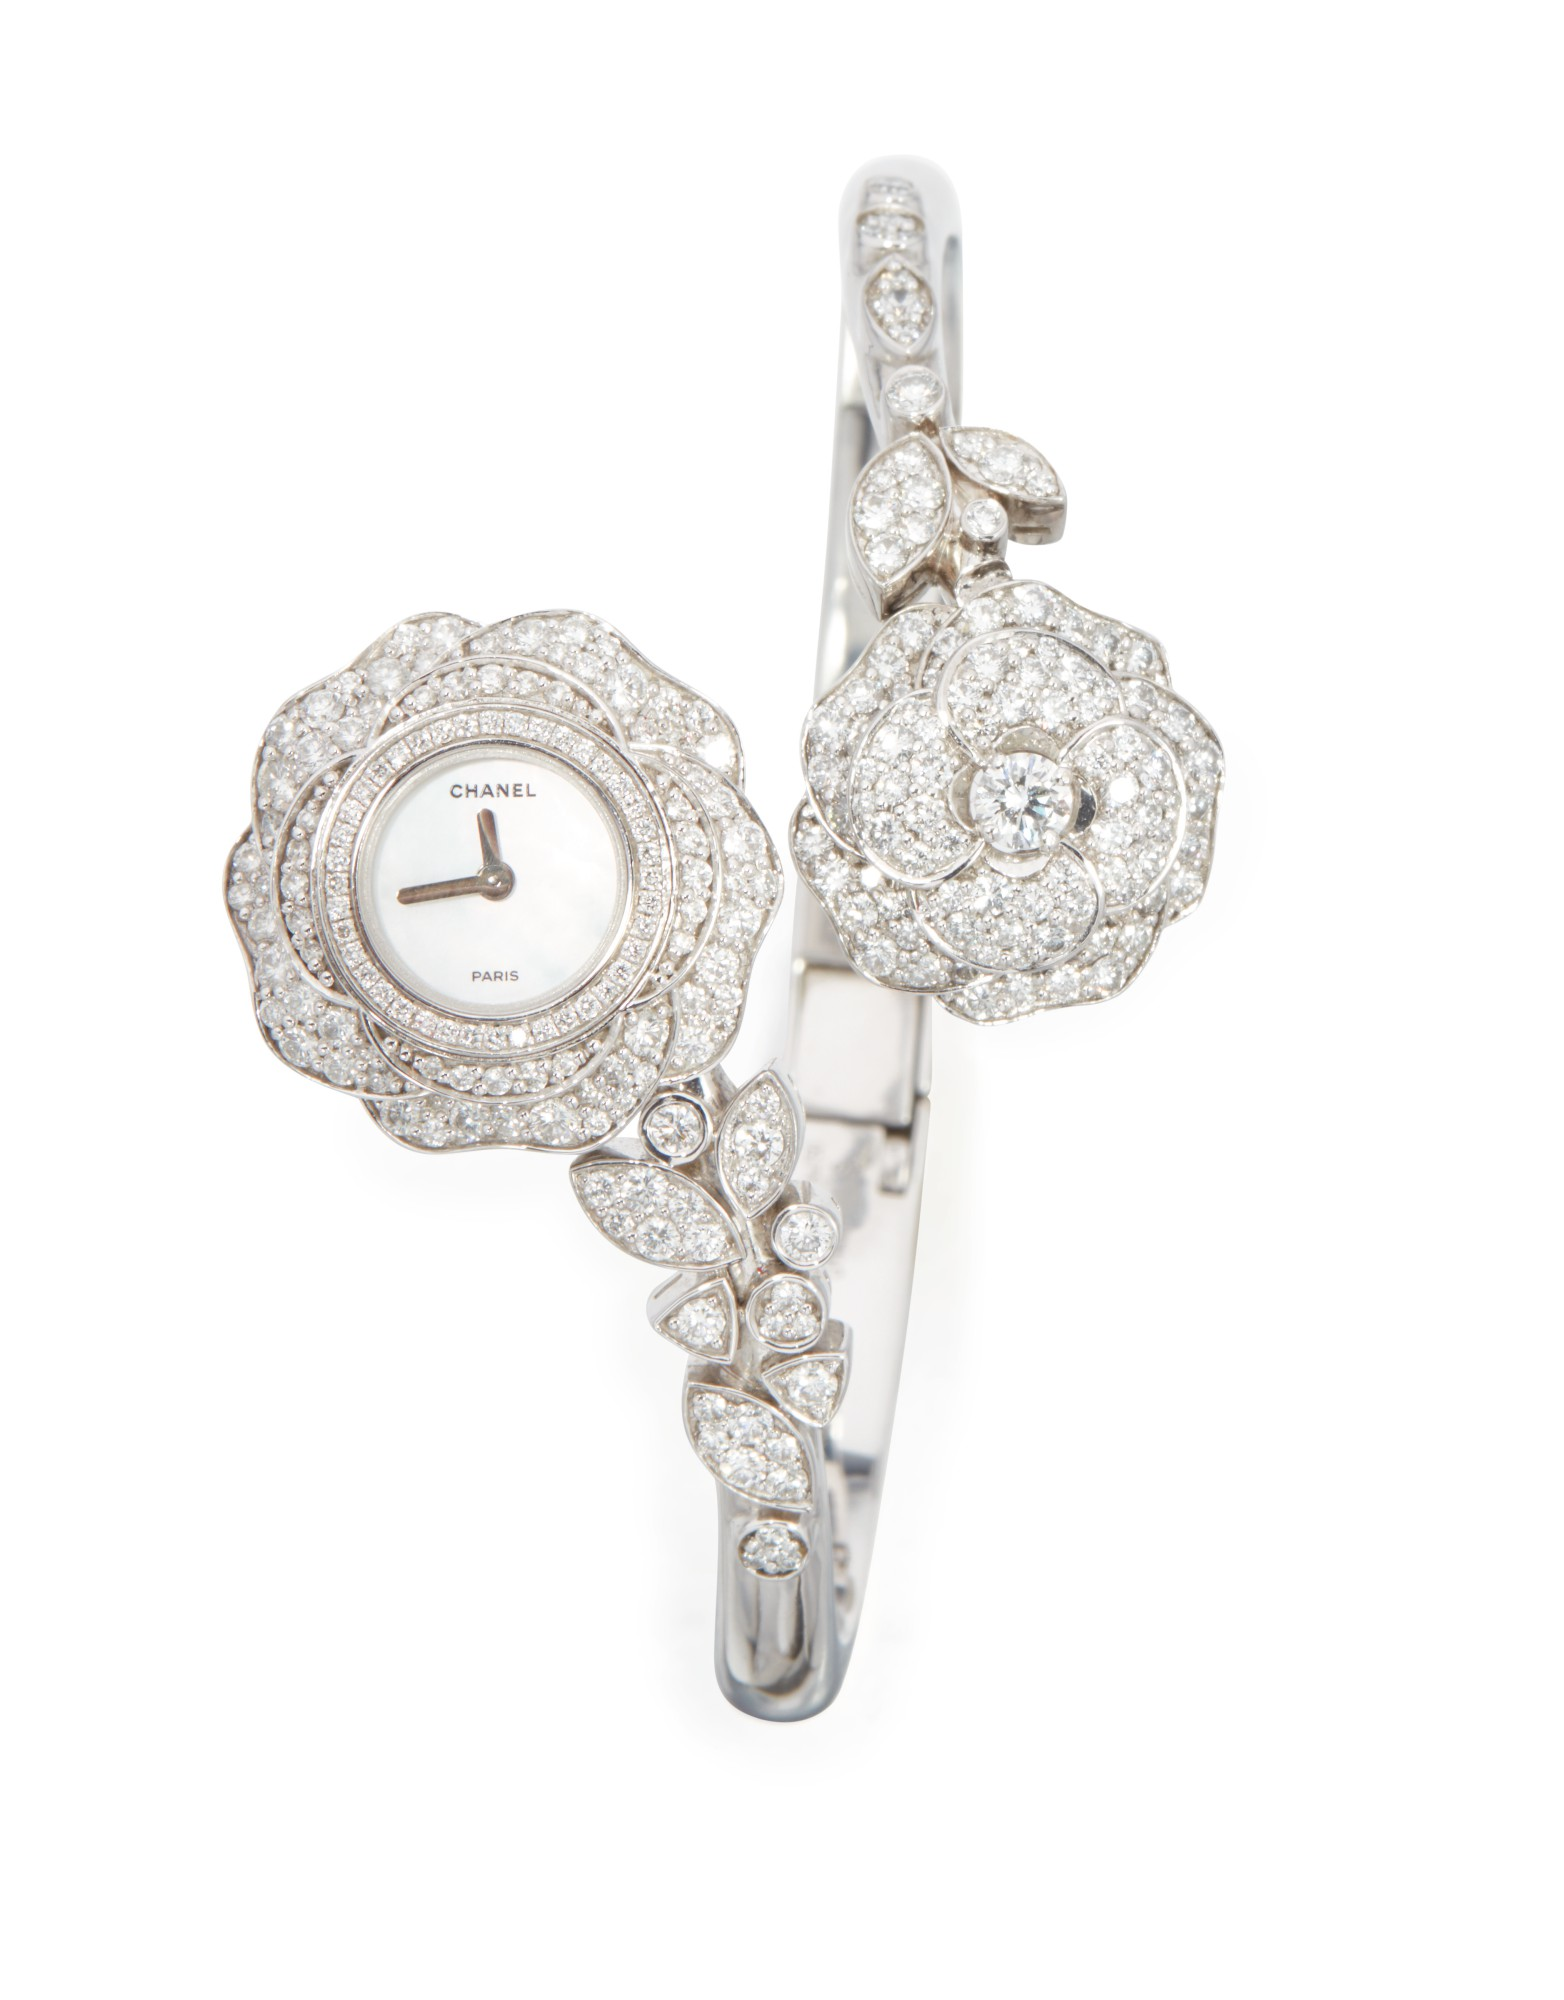 DIAMOND AND MOTHER-OF-PEARL 'CAMELLIA' BRACELET-WATCH, CHANEL, FRANCE